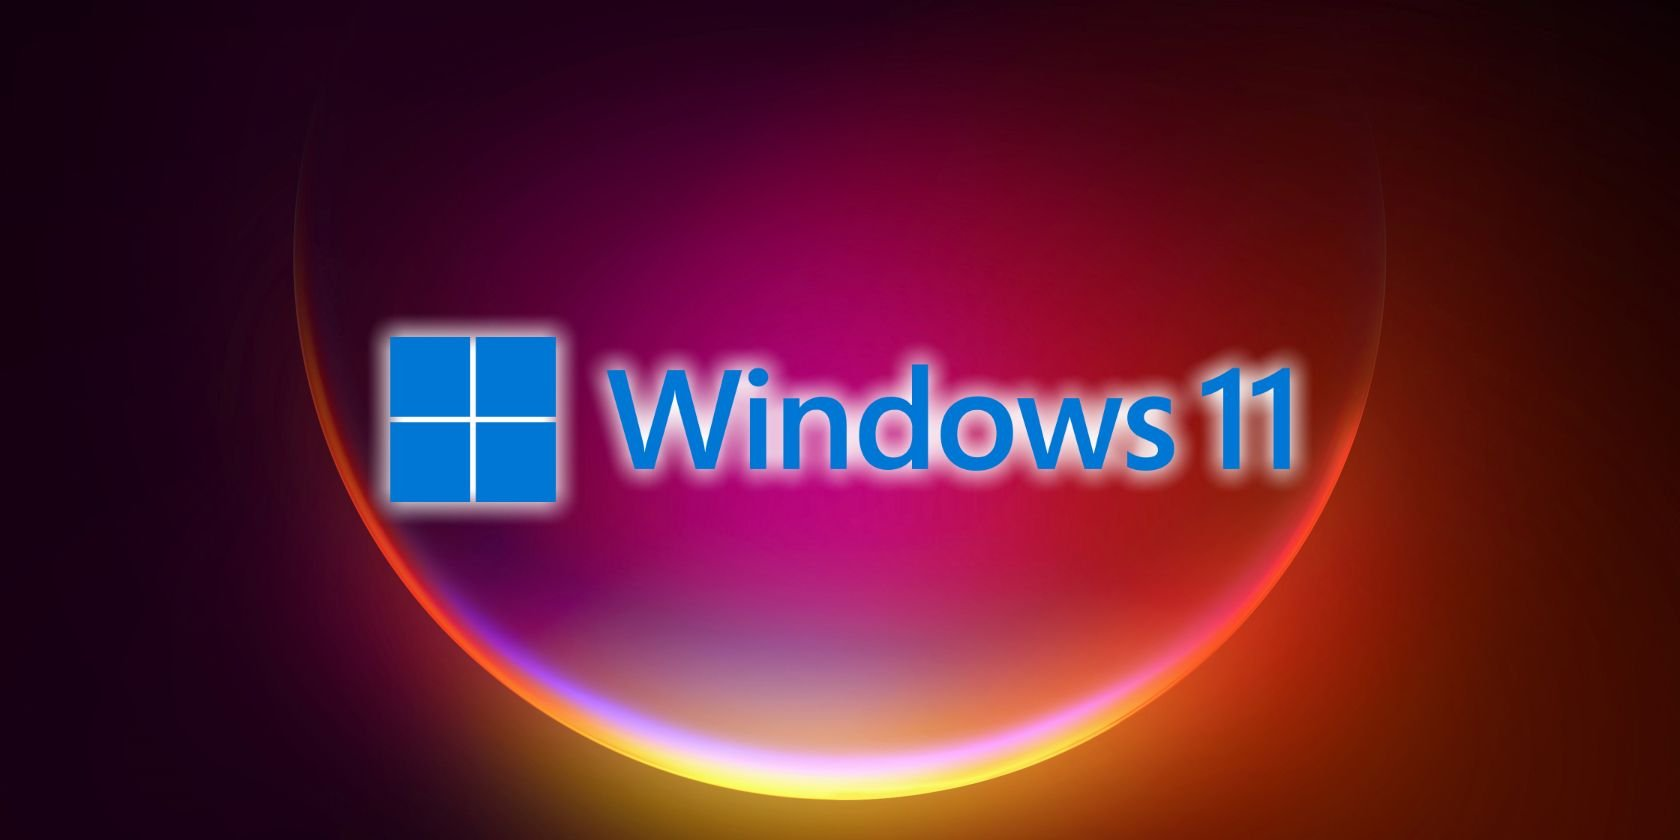 When Can I Install Windows 11? Am I Eligible to Upgrade to Windows 11? Your Questions Answered.